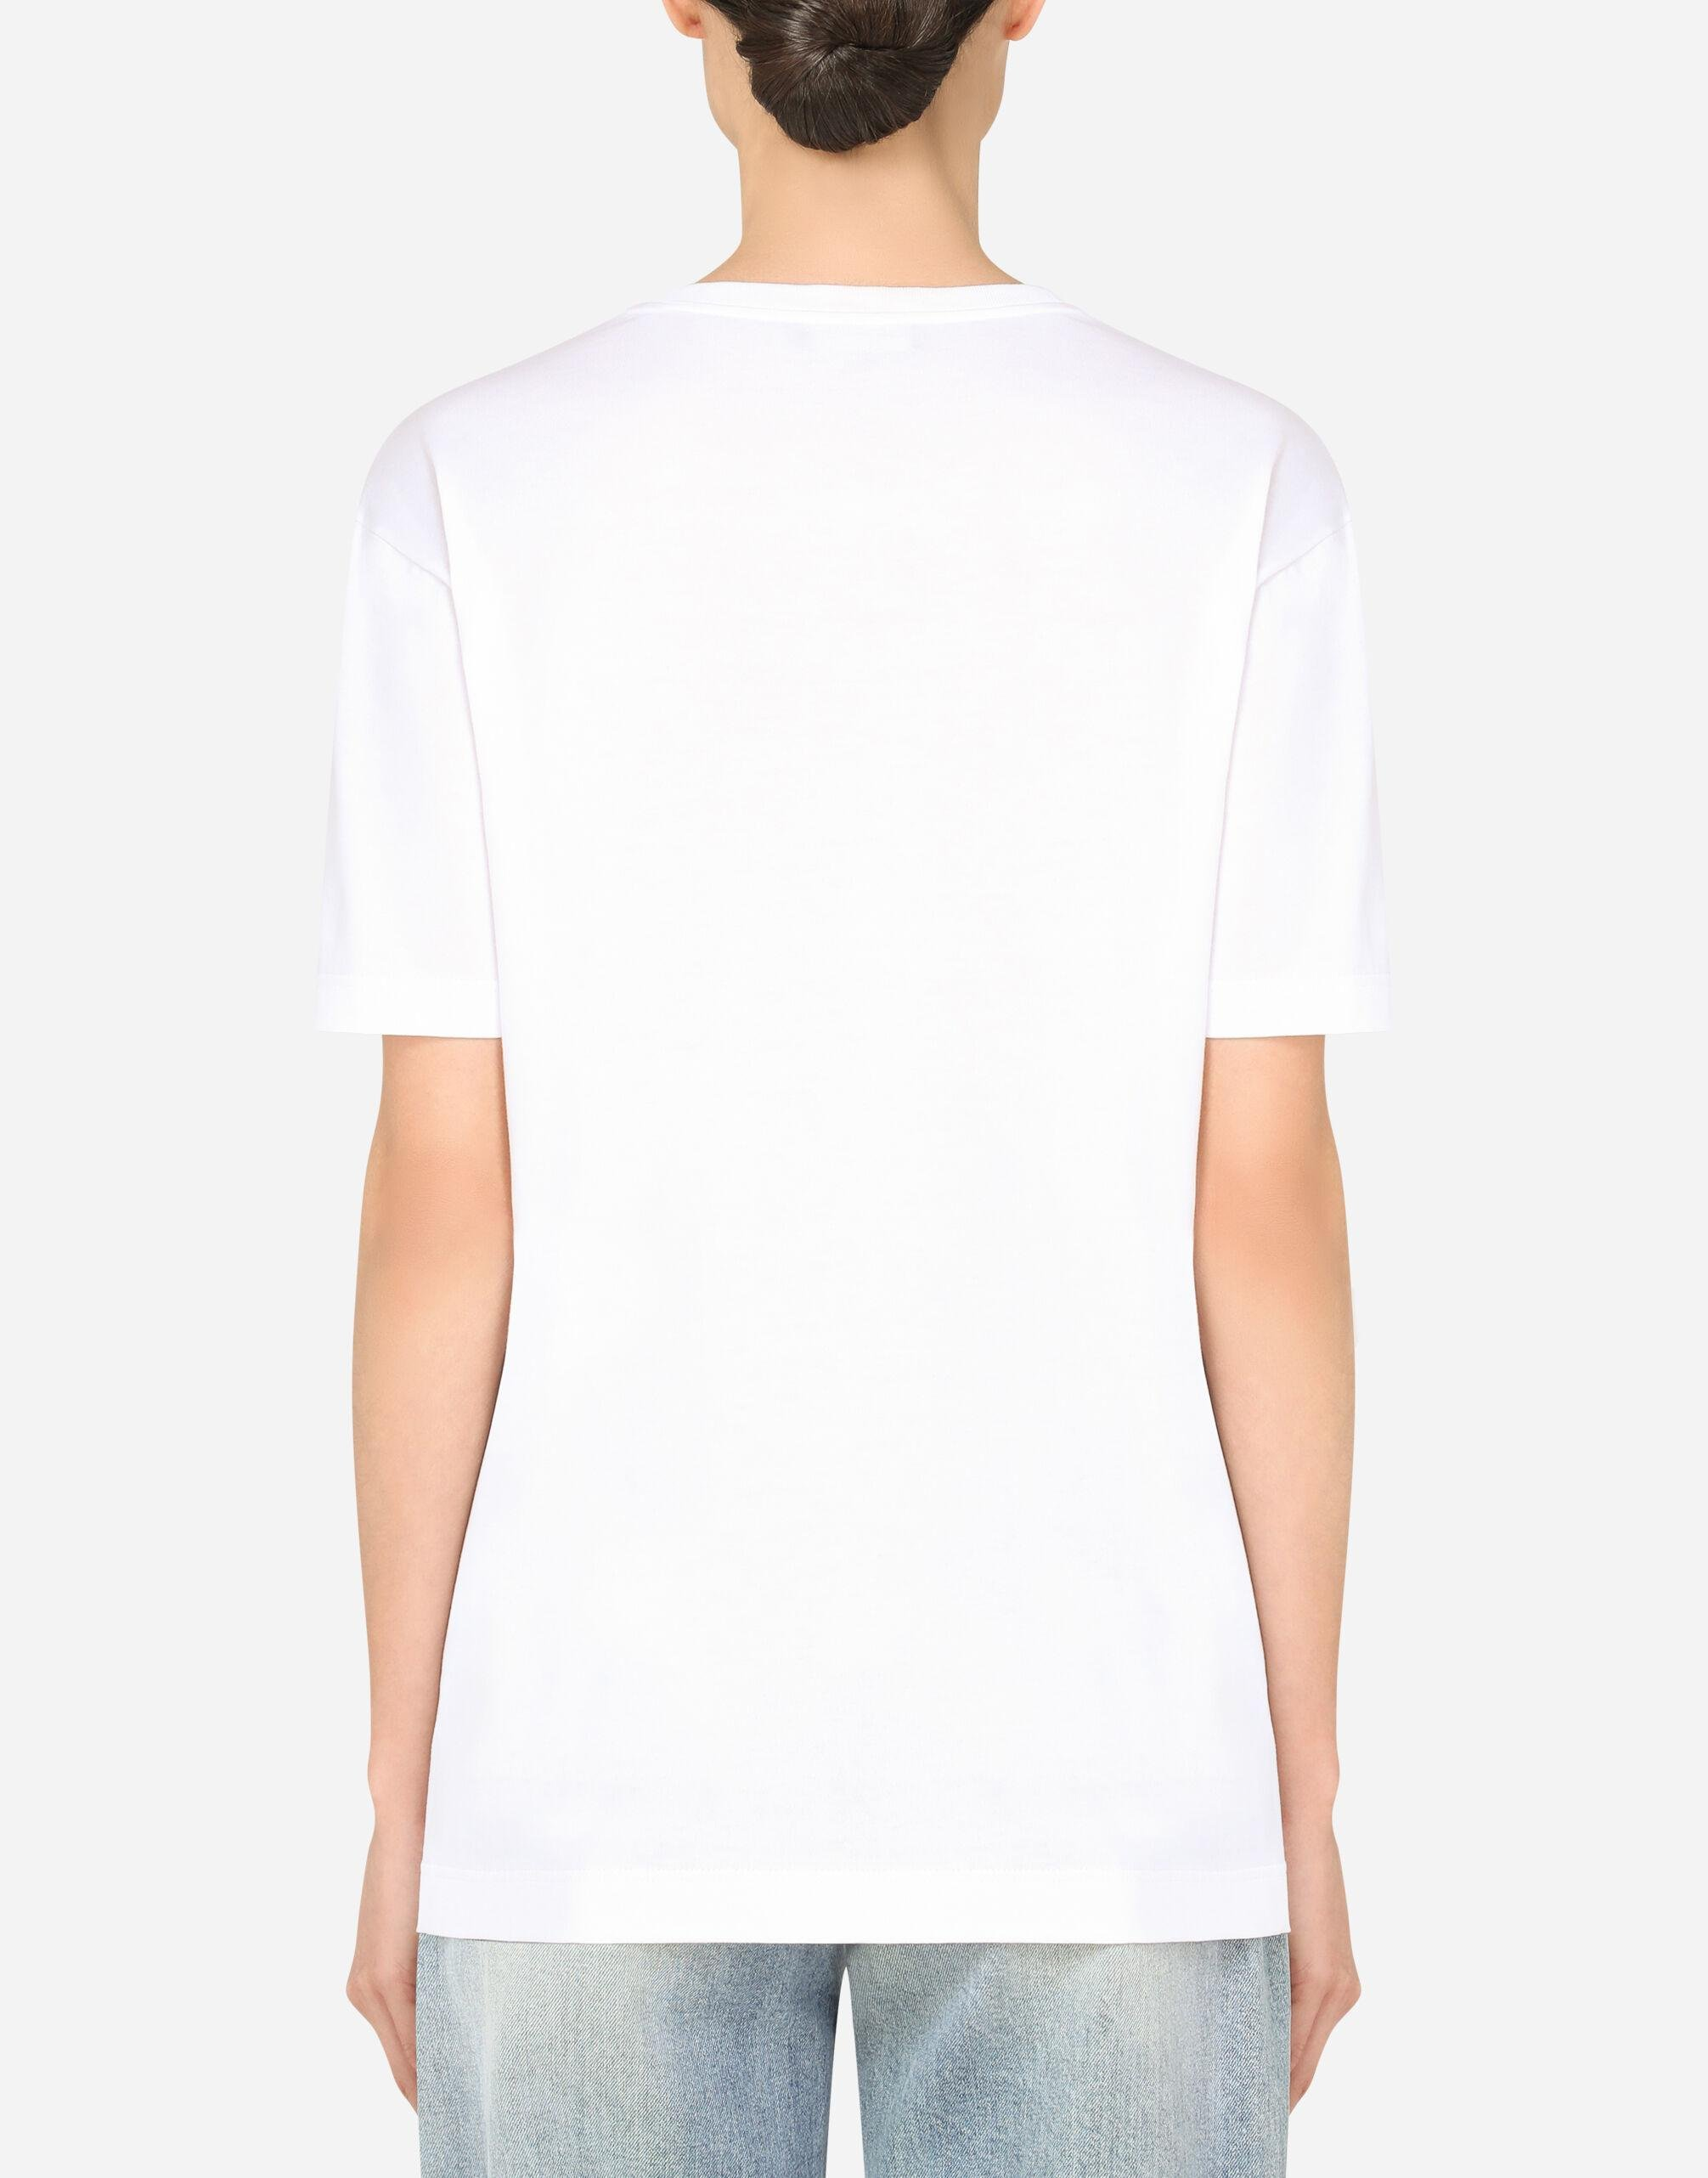 Oversize short-sleeved jersey T-shirt with Dolce & Gabbana lettering 1